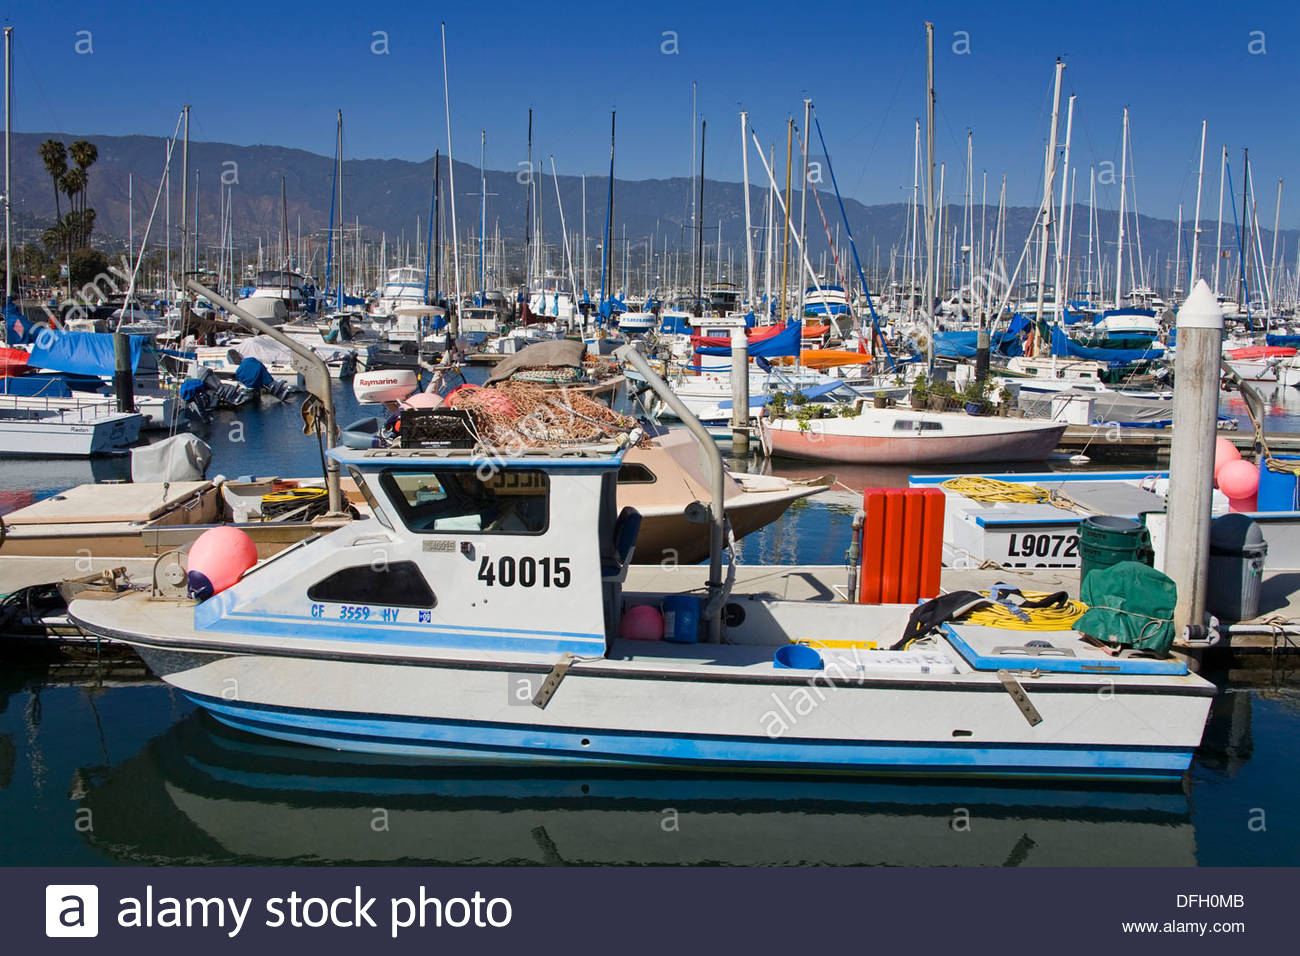 Commercial Fishing Boats Santa Barbara Harbor California